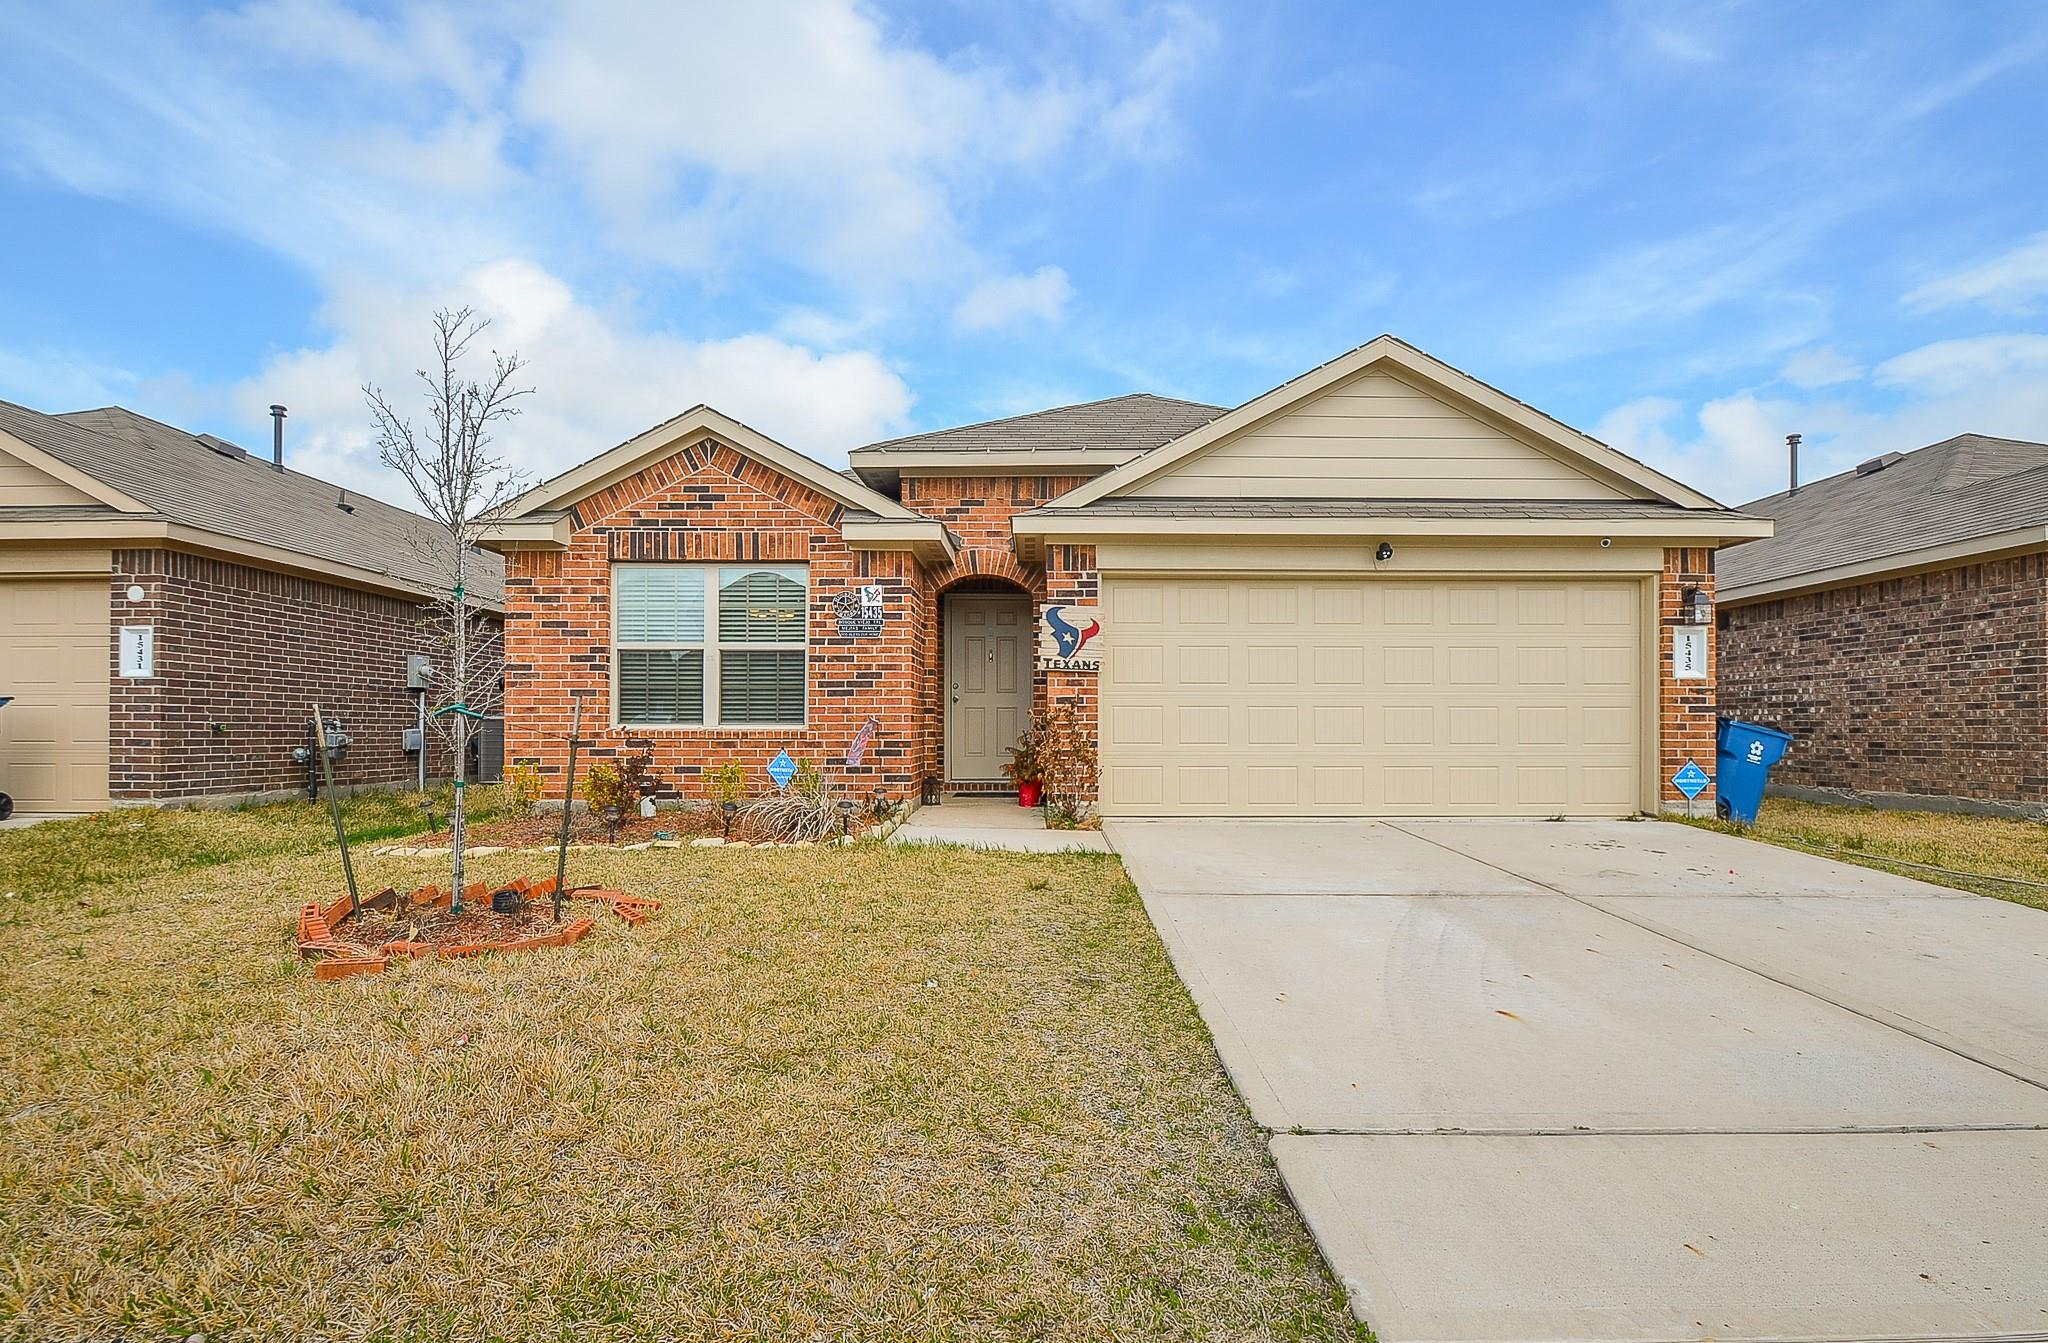 15435 Bosque Viejo Trl Property Photo - Channelview, TX real estate listing